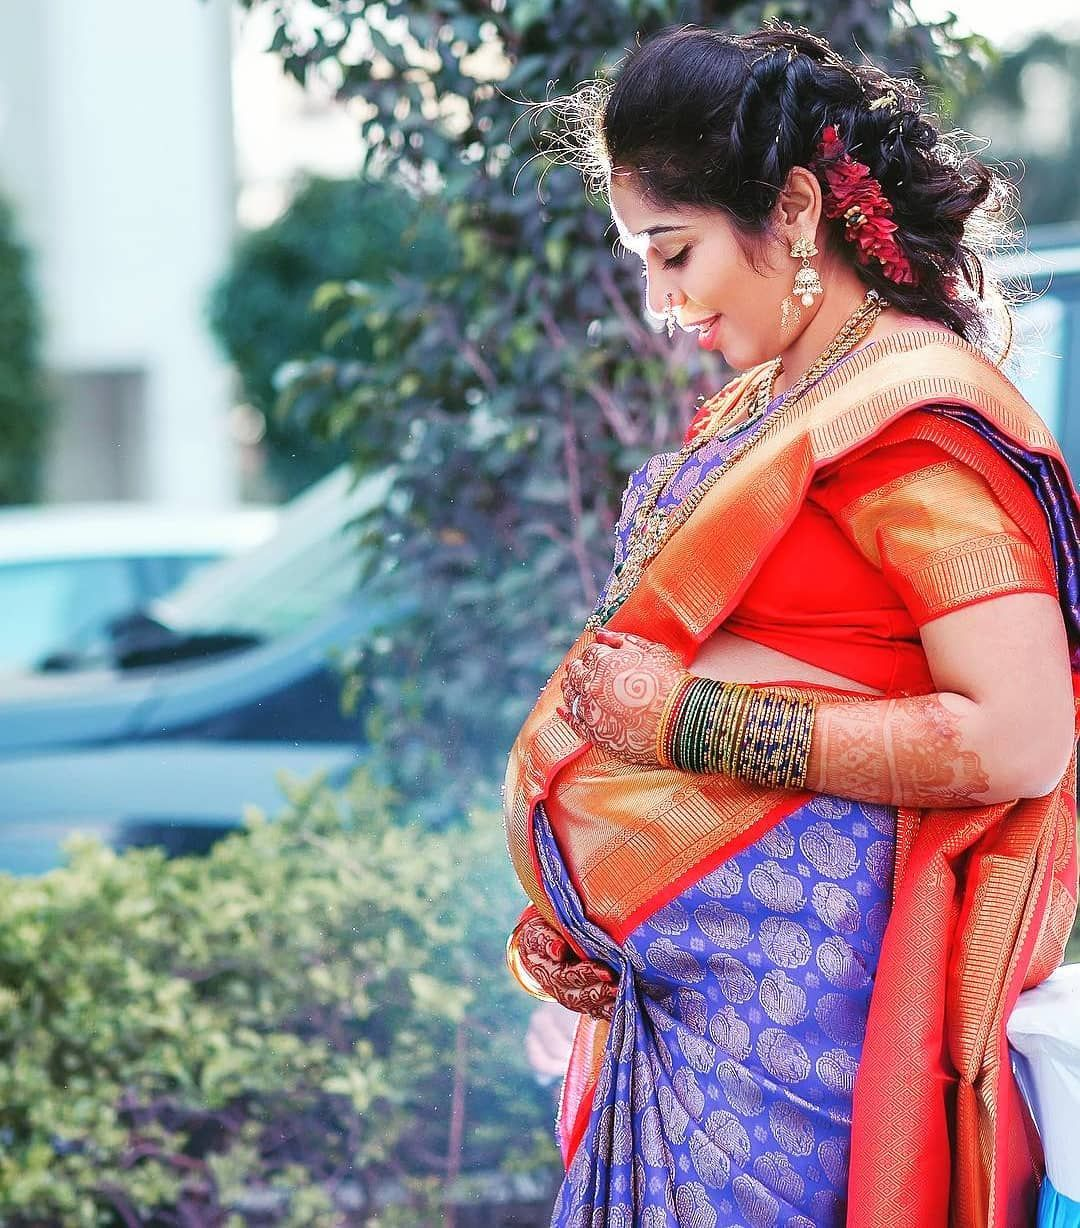 Image May Contain 1 Person Indian Maternity Photos Indian Maternity Maternity Photoshoot Poses